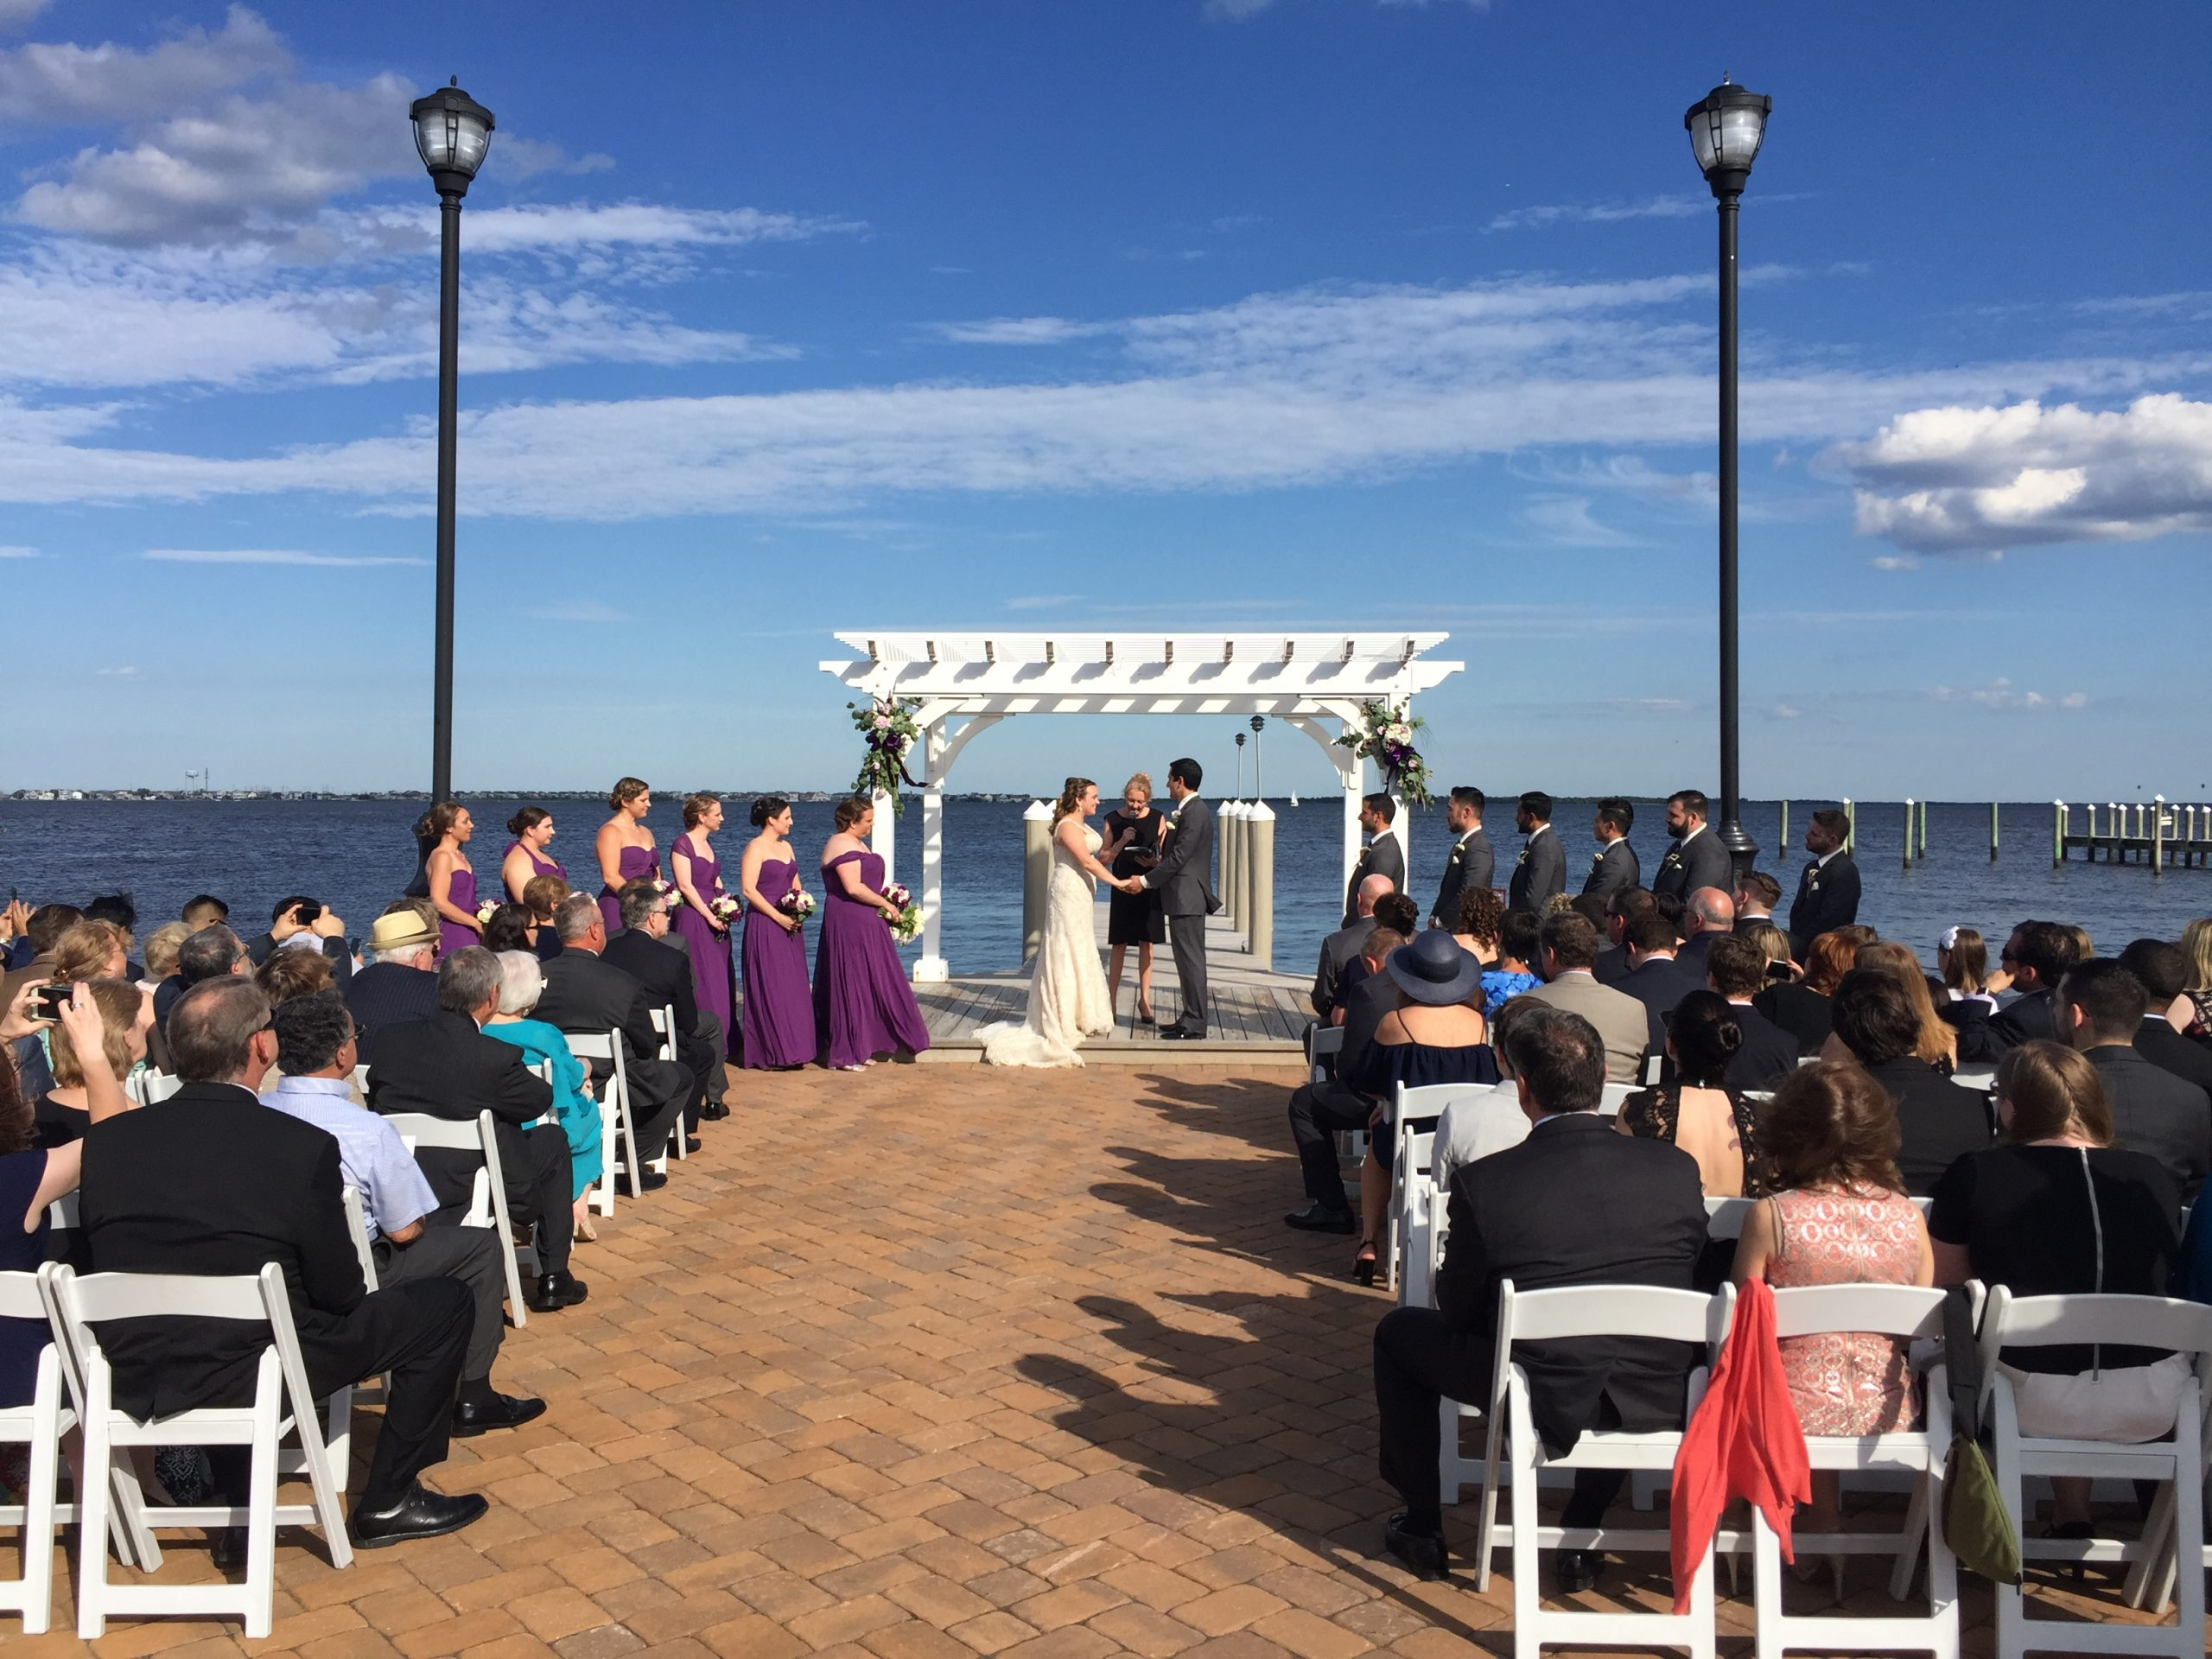 What a spot for ceremony!